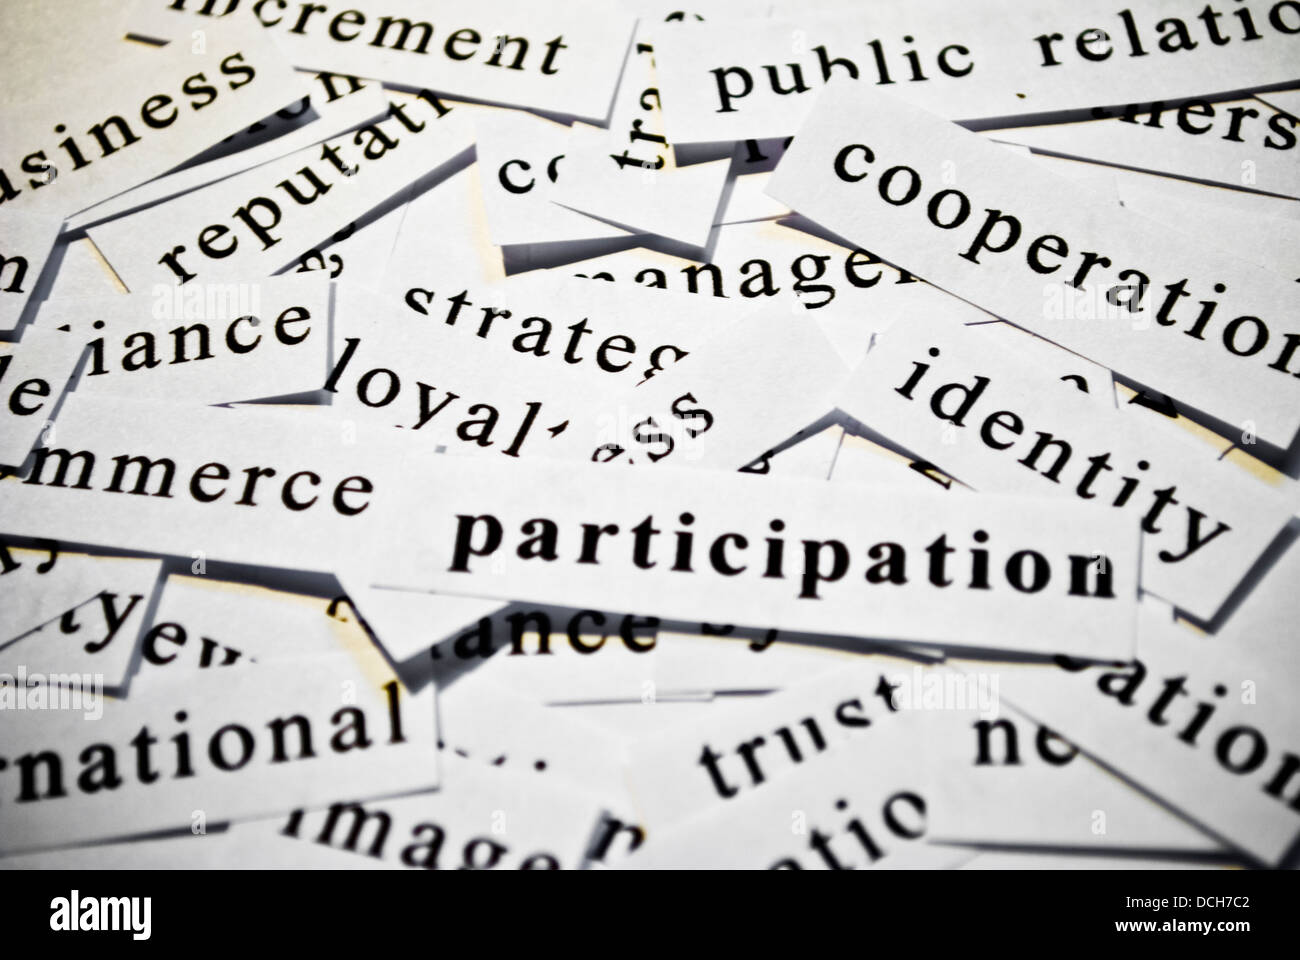 Participation. Concept of cut-out words related with business activity - Stock Image